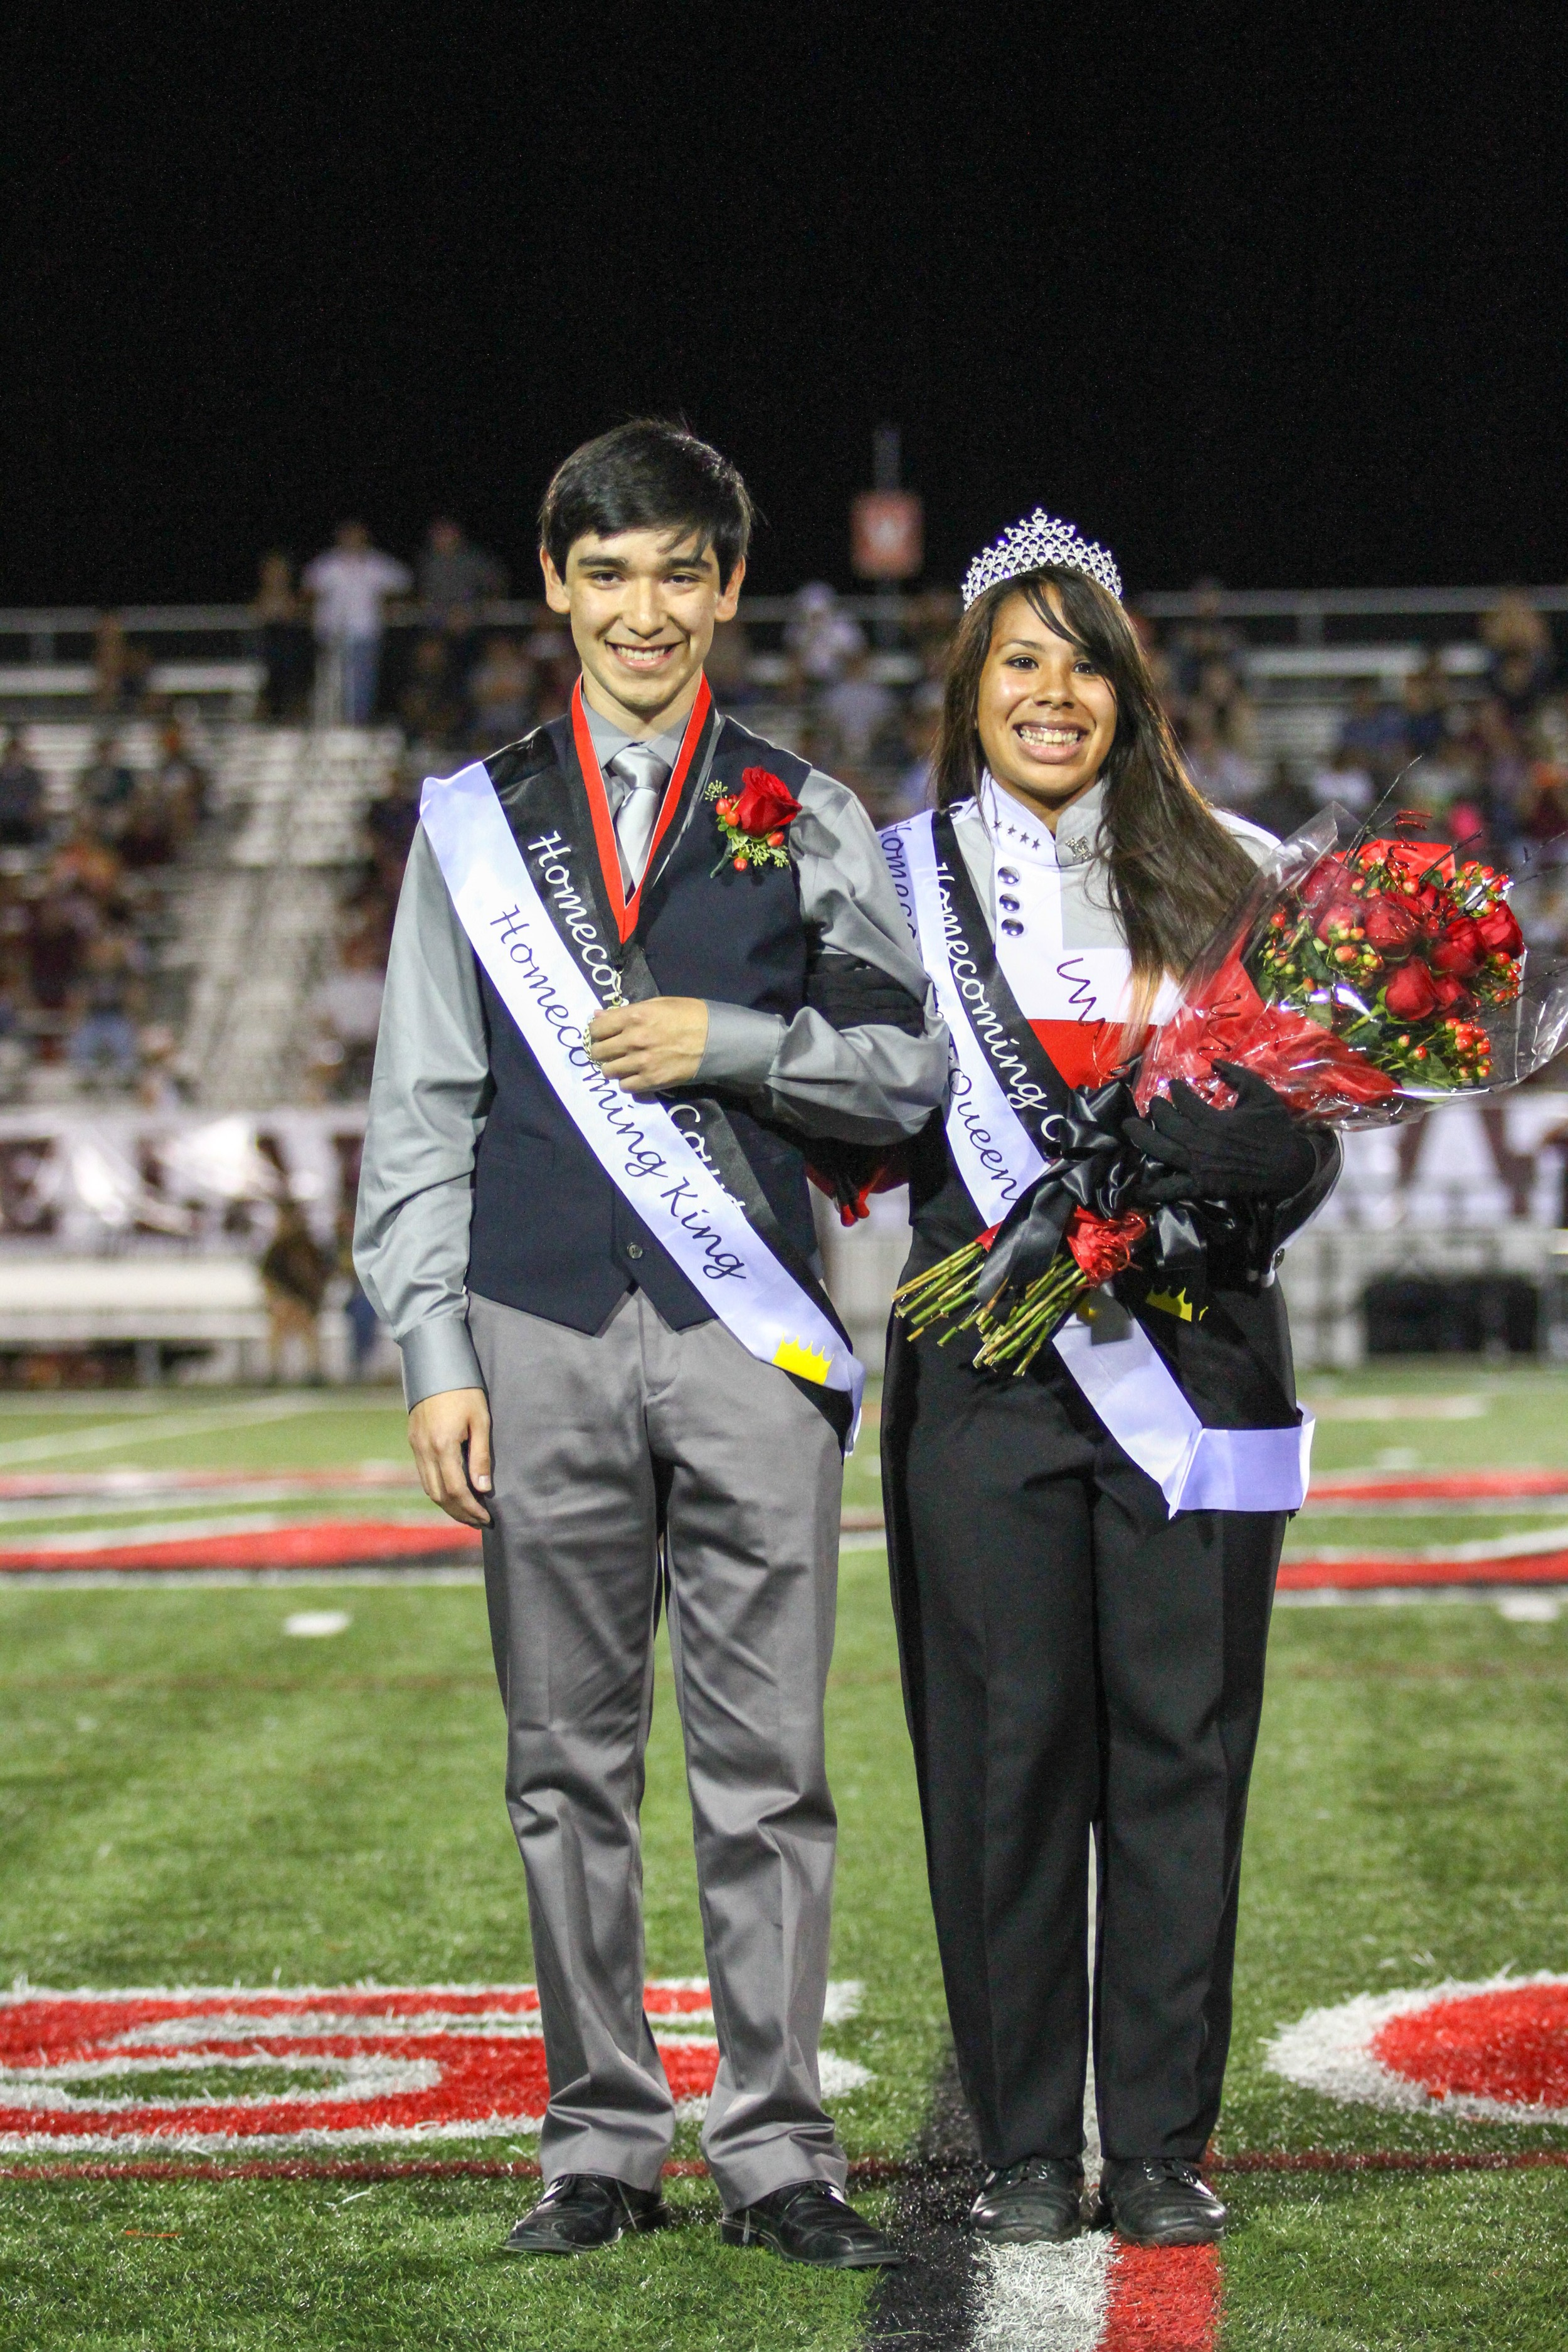 LTHS Homecoming King and Queen 2015.jpg